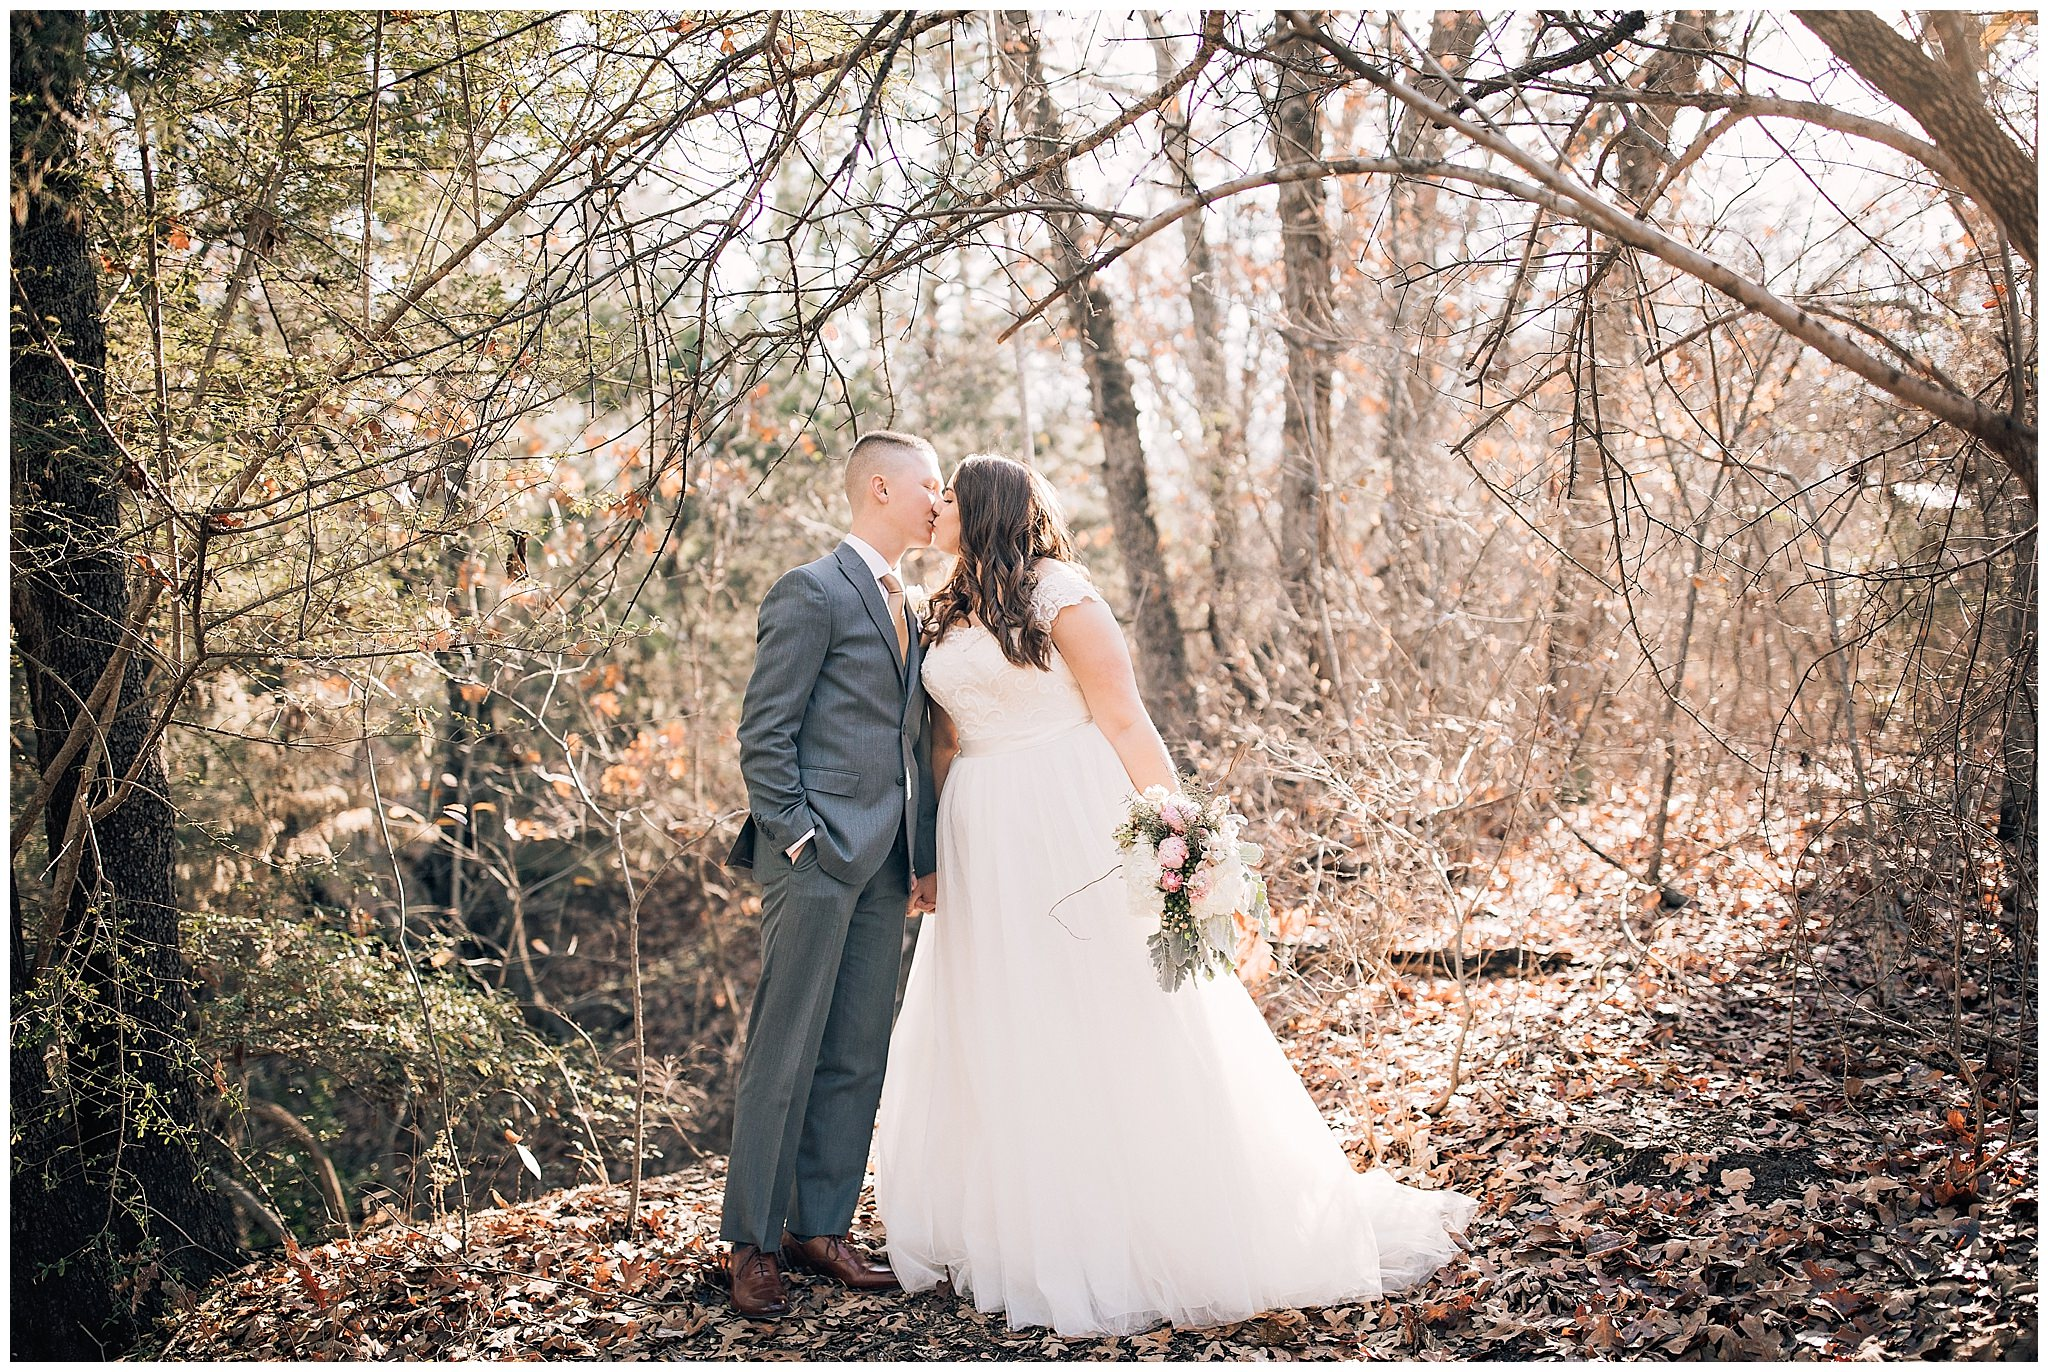 Bride and Groom kissing at their Texas countryside wedding